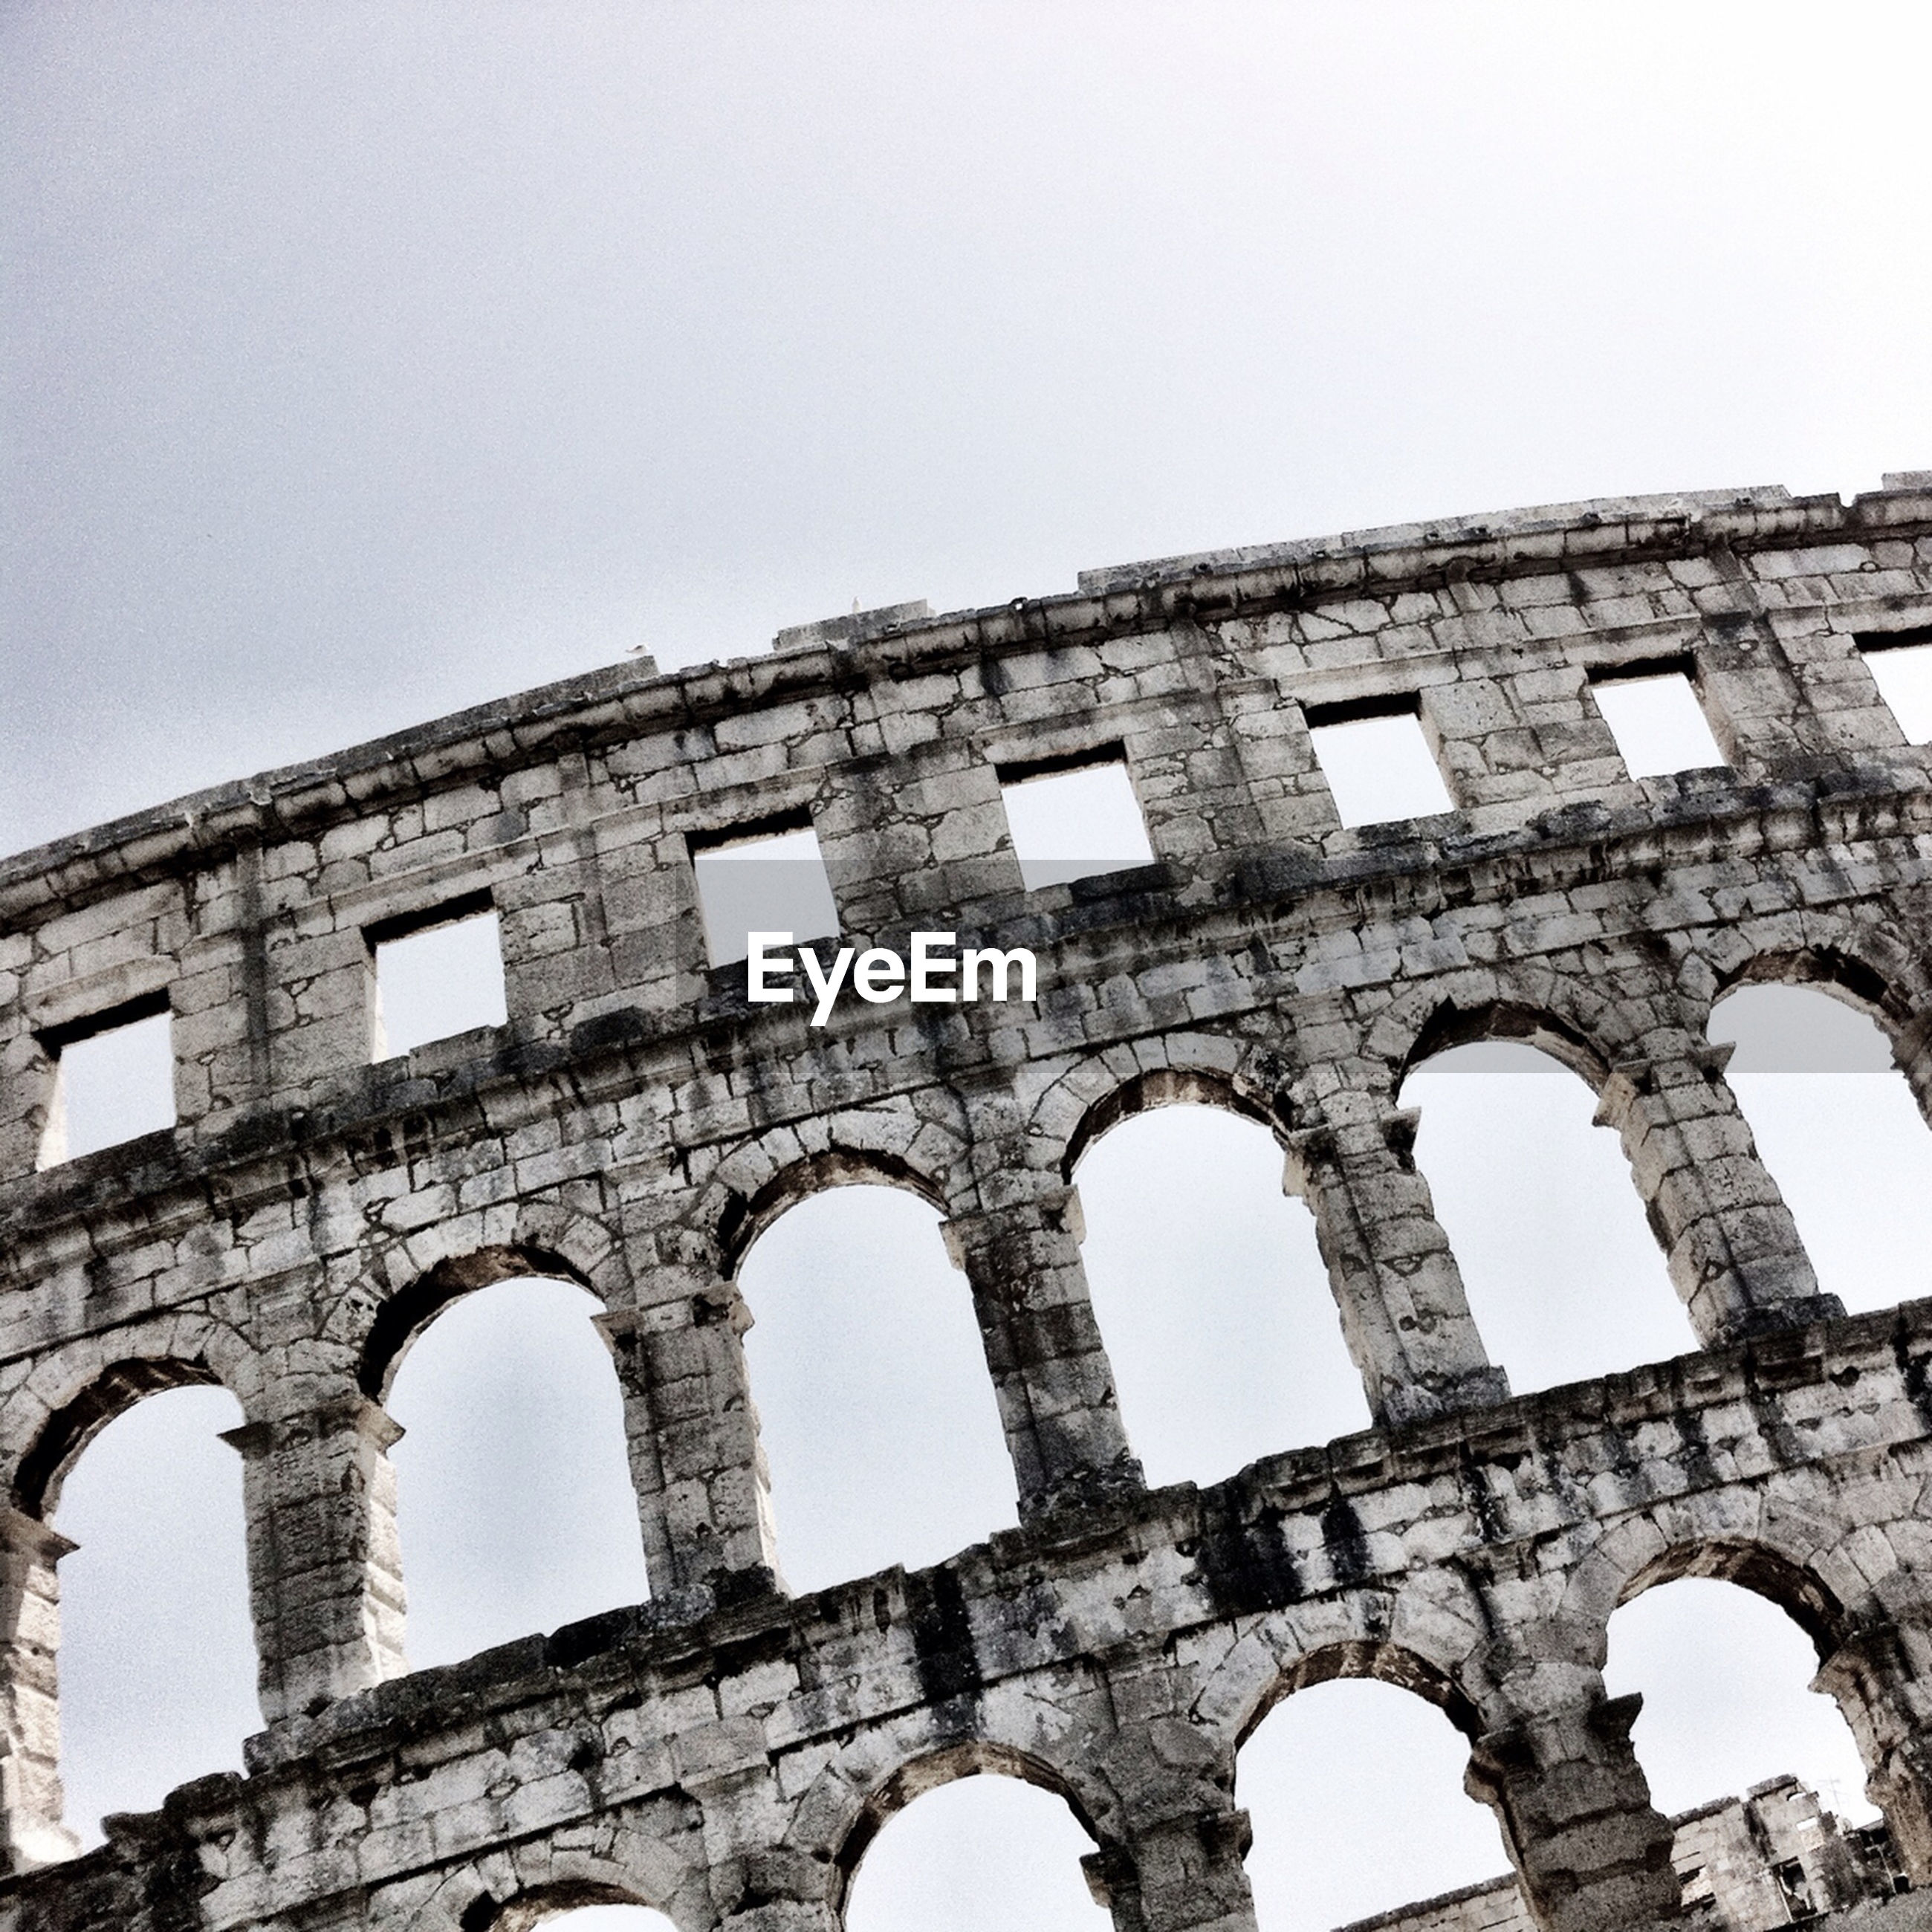 architecture, built structure, arch, history, clear sky, old ruin, building exterior, old, low angle view, ancient, the past, abandoned, damaged, copy space, weathered, coliseum, obsolete, ancient civilization, culture, ruined